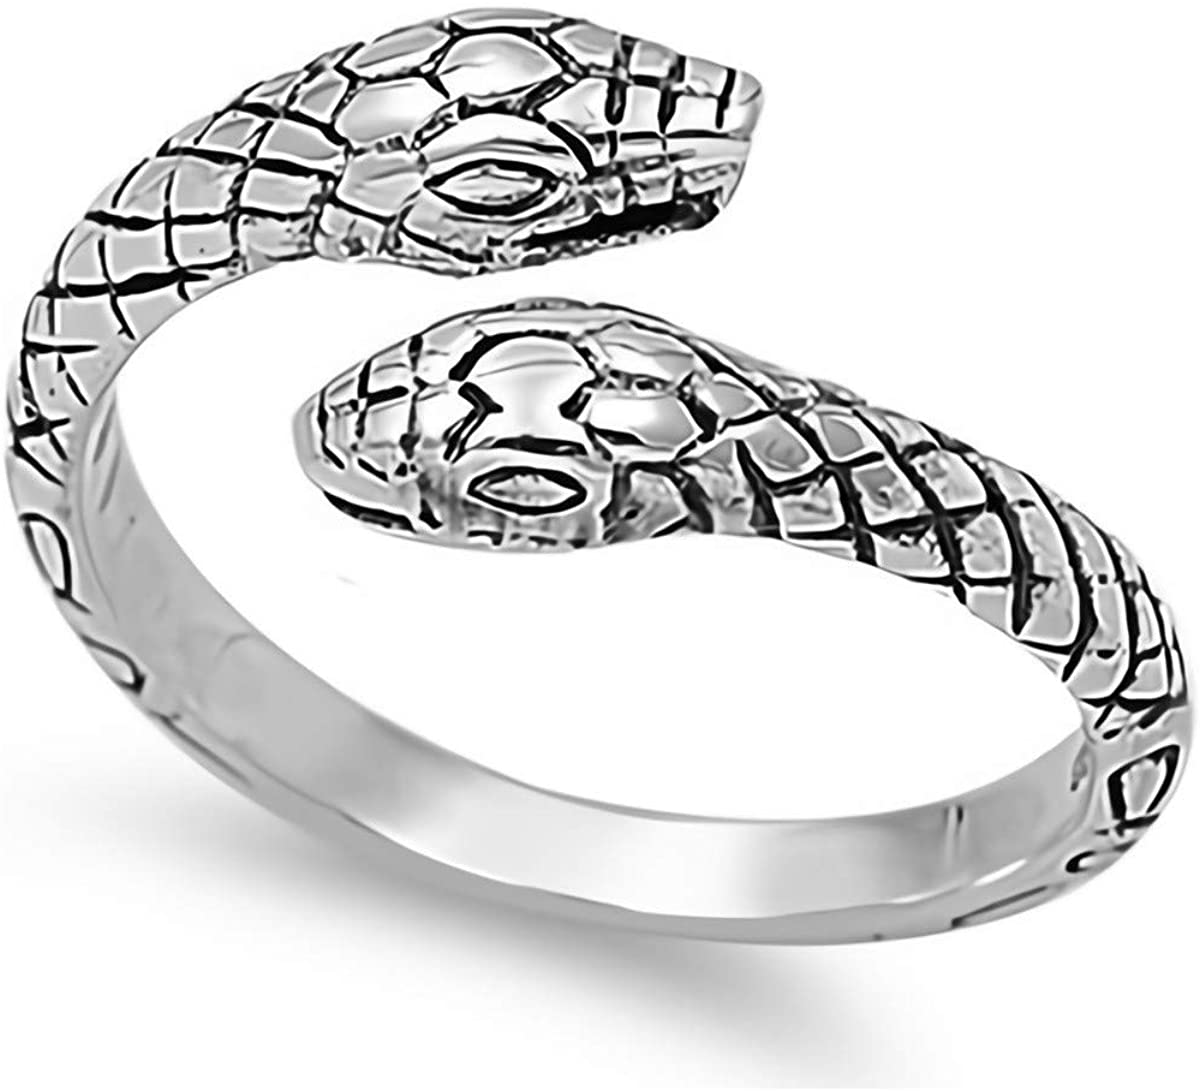 Glitzs Jewels 925 Sterling Silver Ring (Snake)   Cute Jewelry Gift for Women in Gift Box